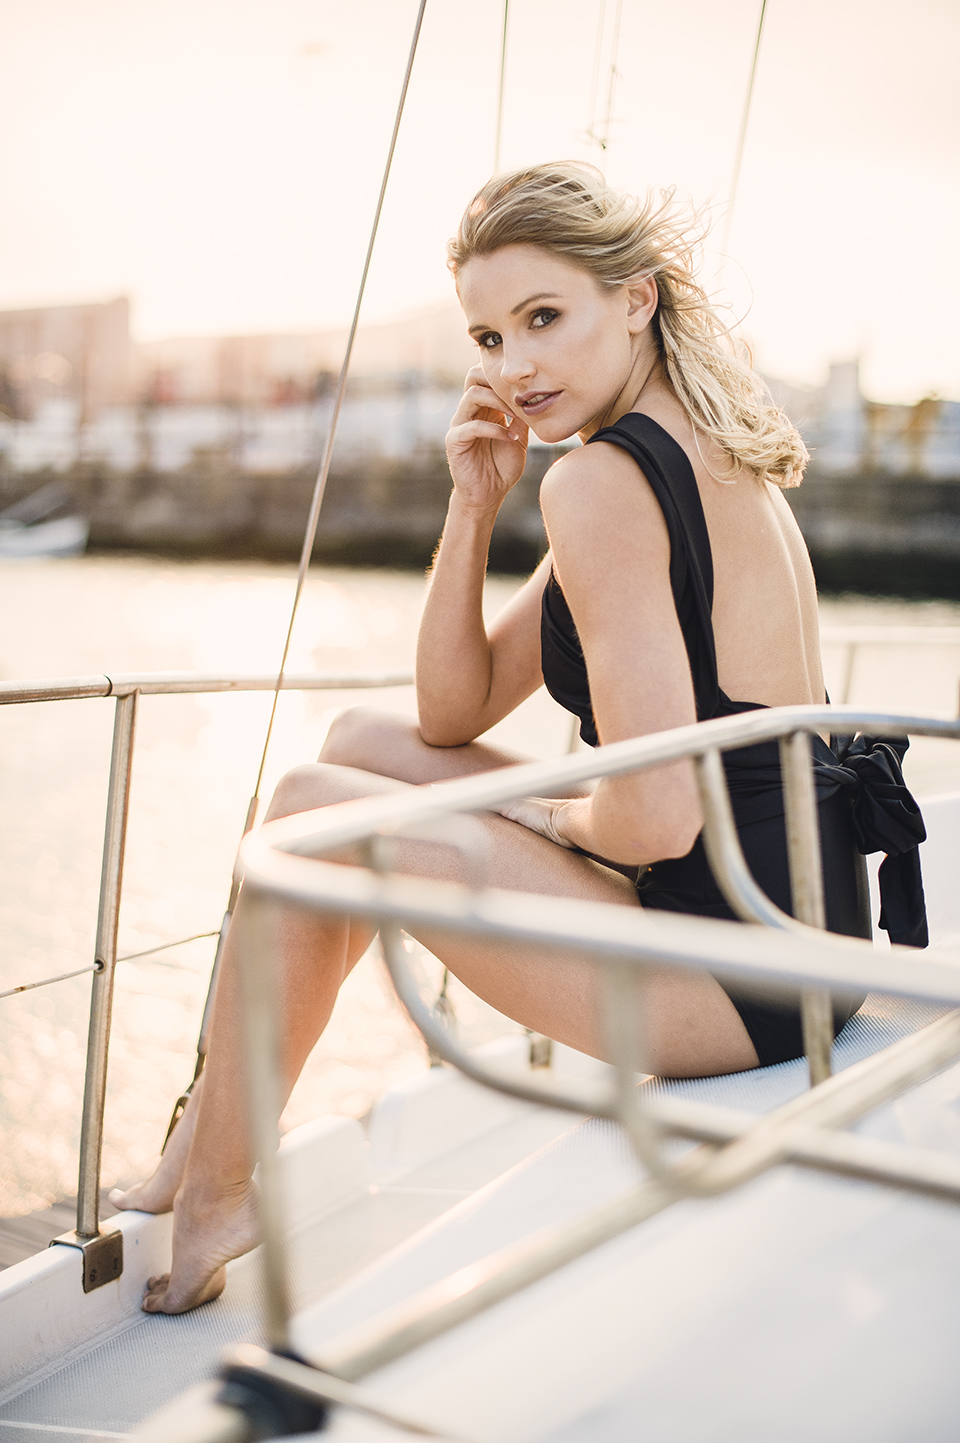 RyanParker_CapeTown_Photographer_Editorial_Fashion_Yacht_Nautical_RyanParker_CapeTown_Photographer_Editorial_Fashion_Yacht_Nautical_DSC_1599.jpg